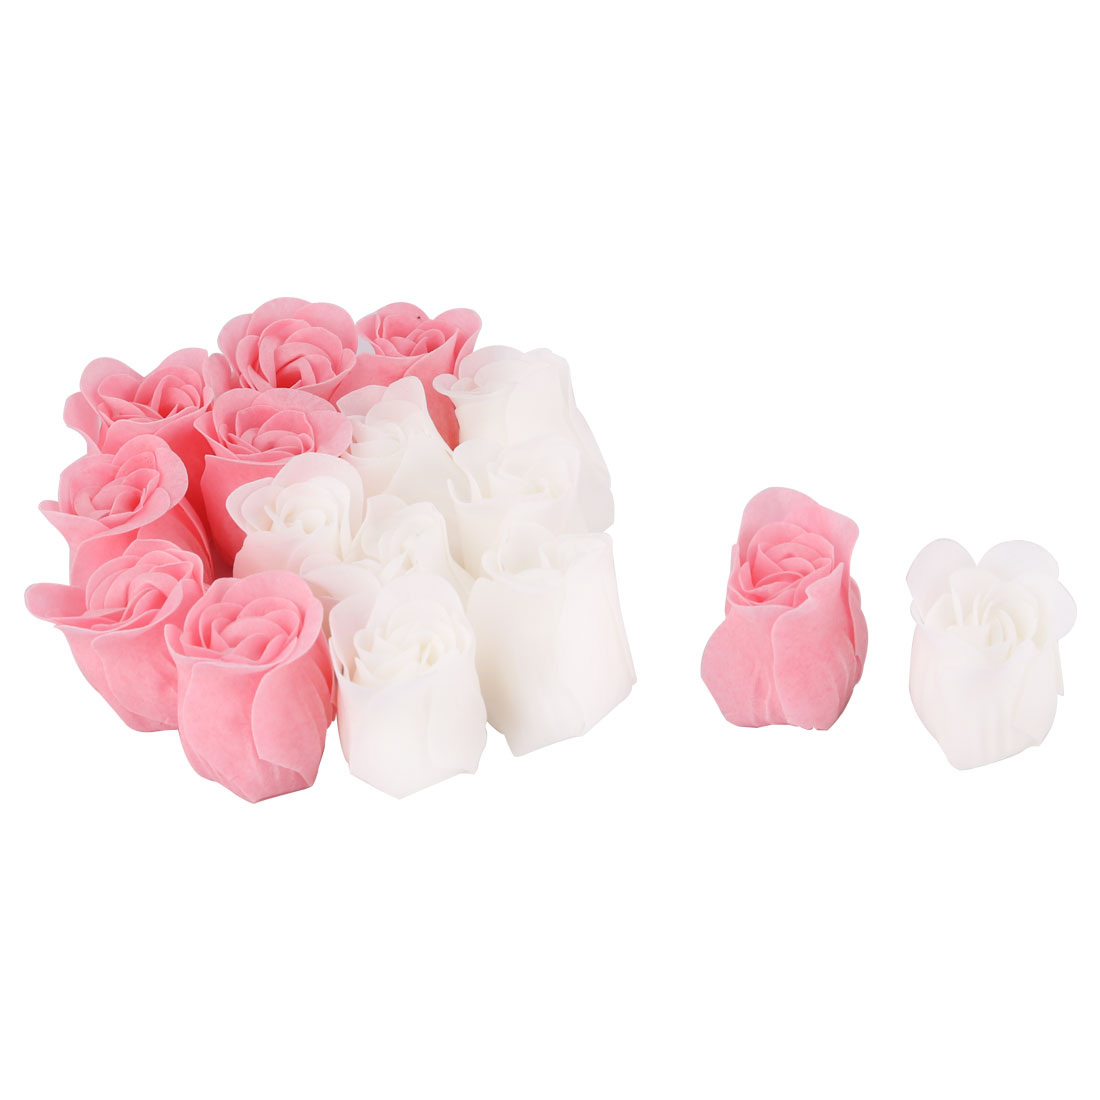 Household Bathroom Rose Shaped Bath Body Hand Fragrant Bud Petal Soap 16 Pcs